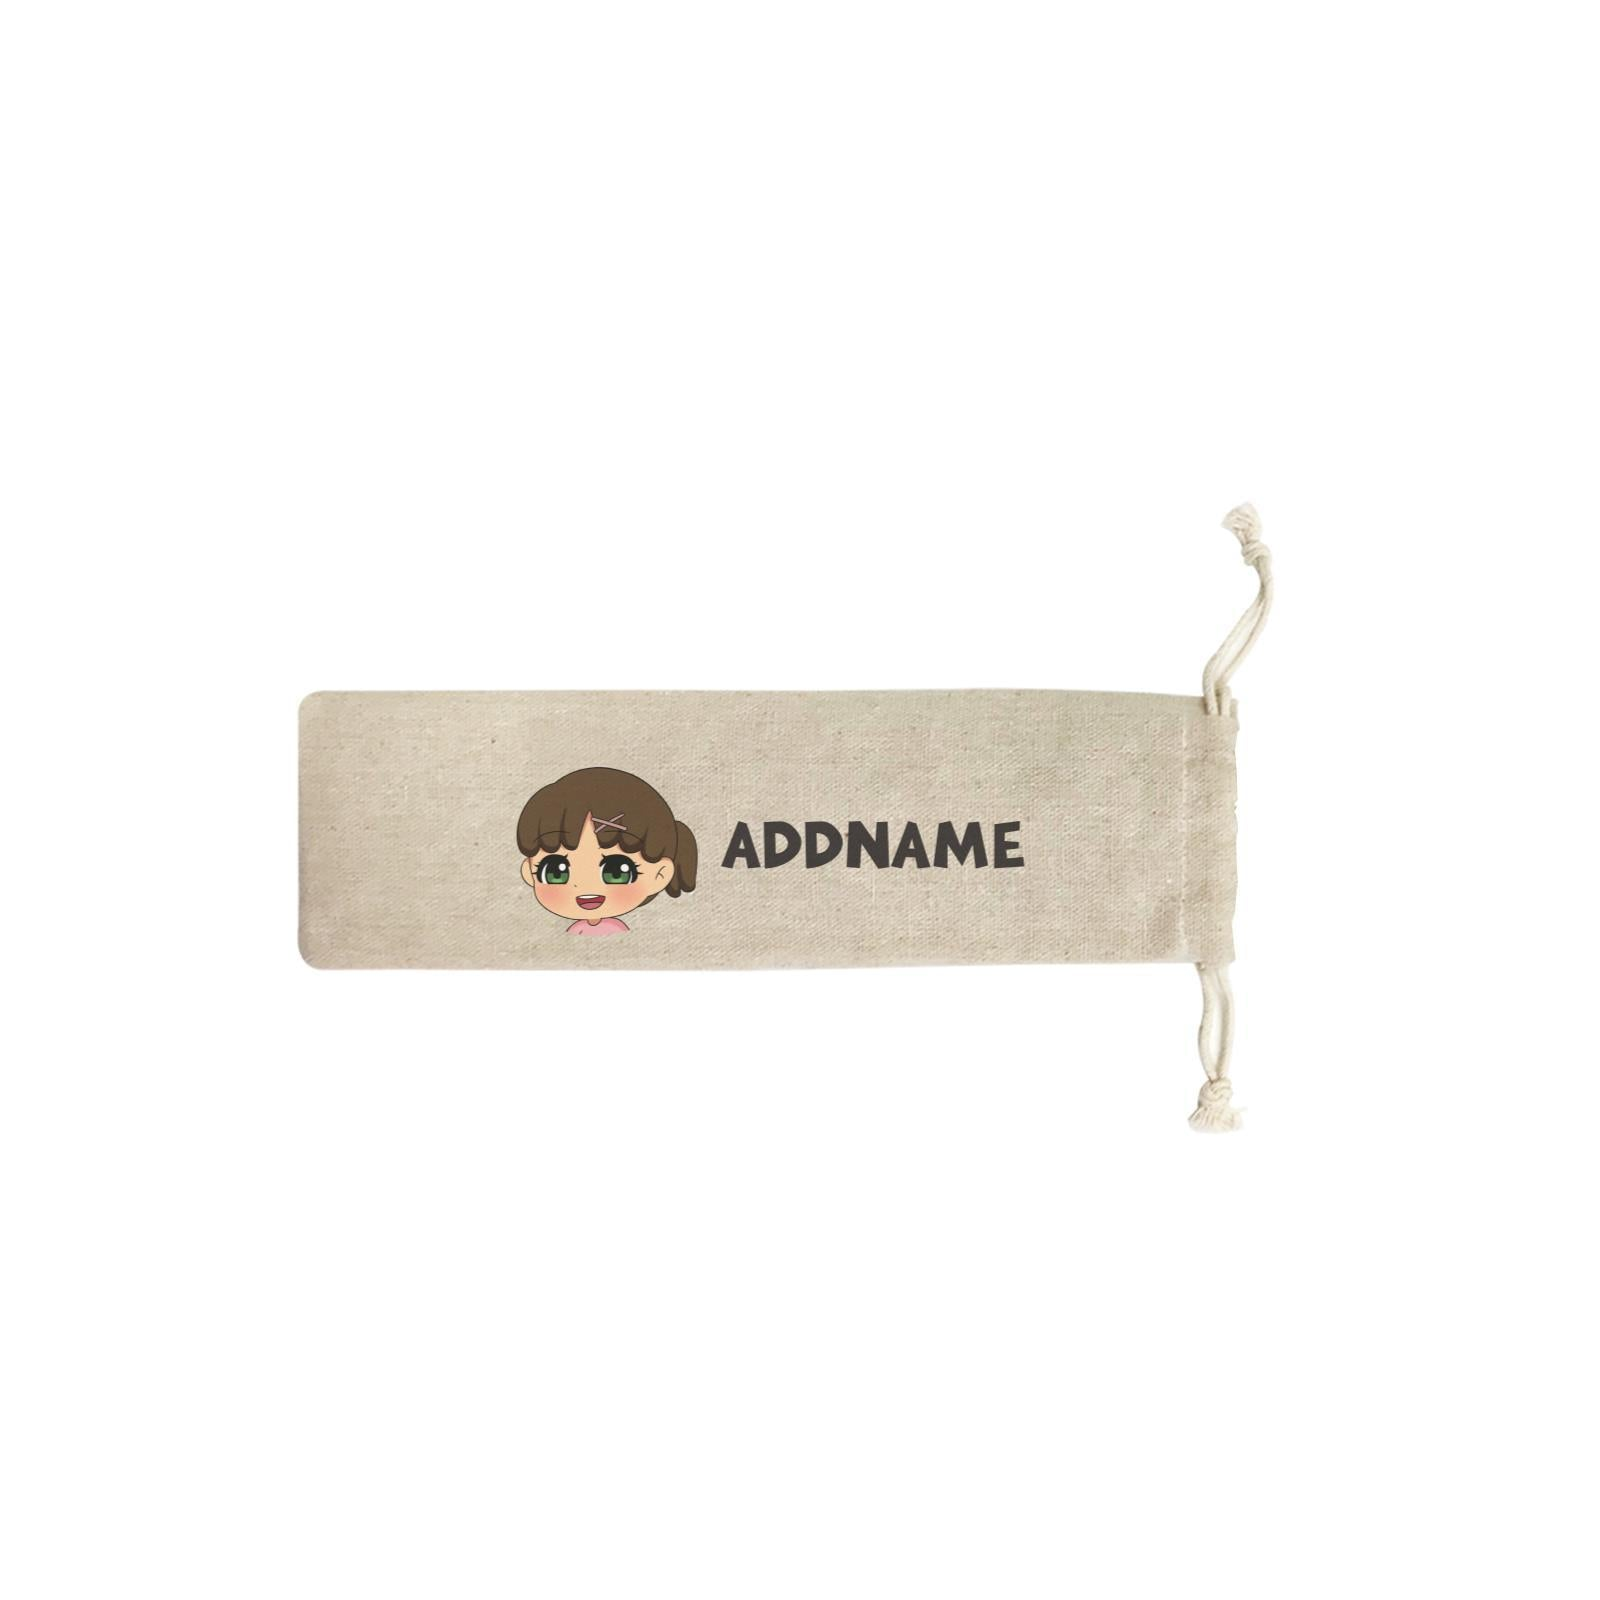 Children's Day Gift Series Little Girl Facing Right Addname SB Straw Pouch (No Straws included)